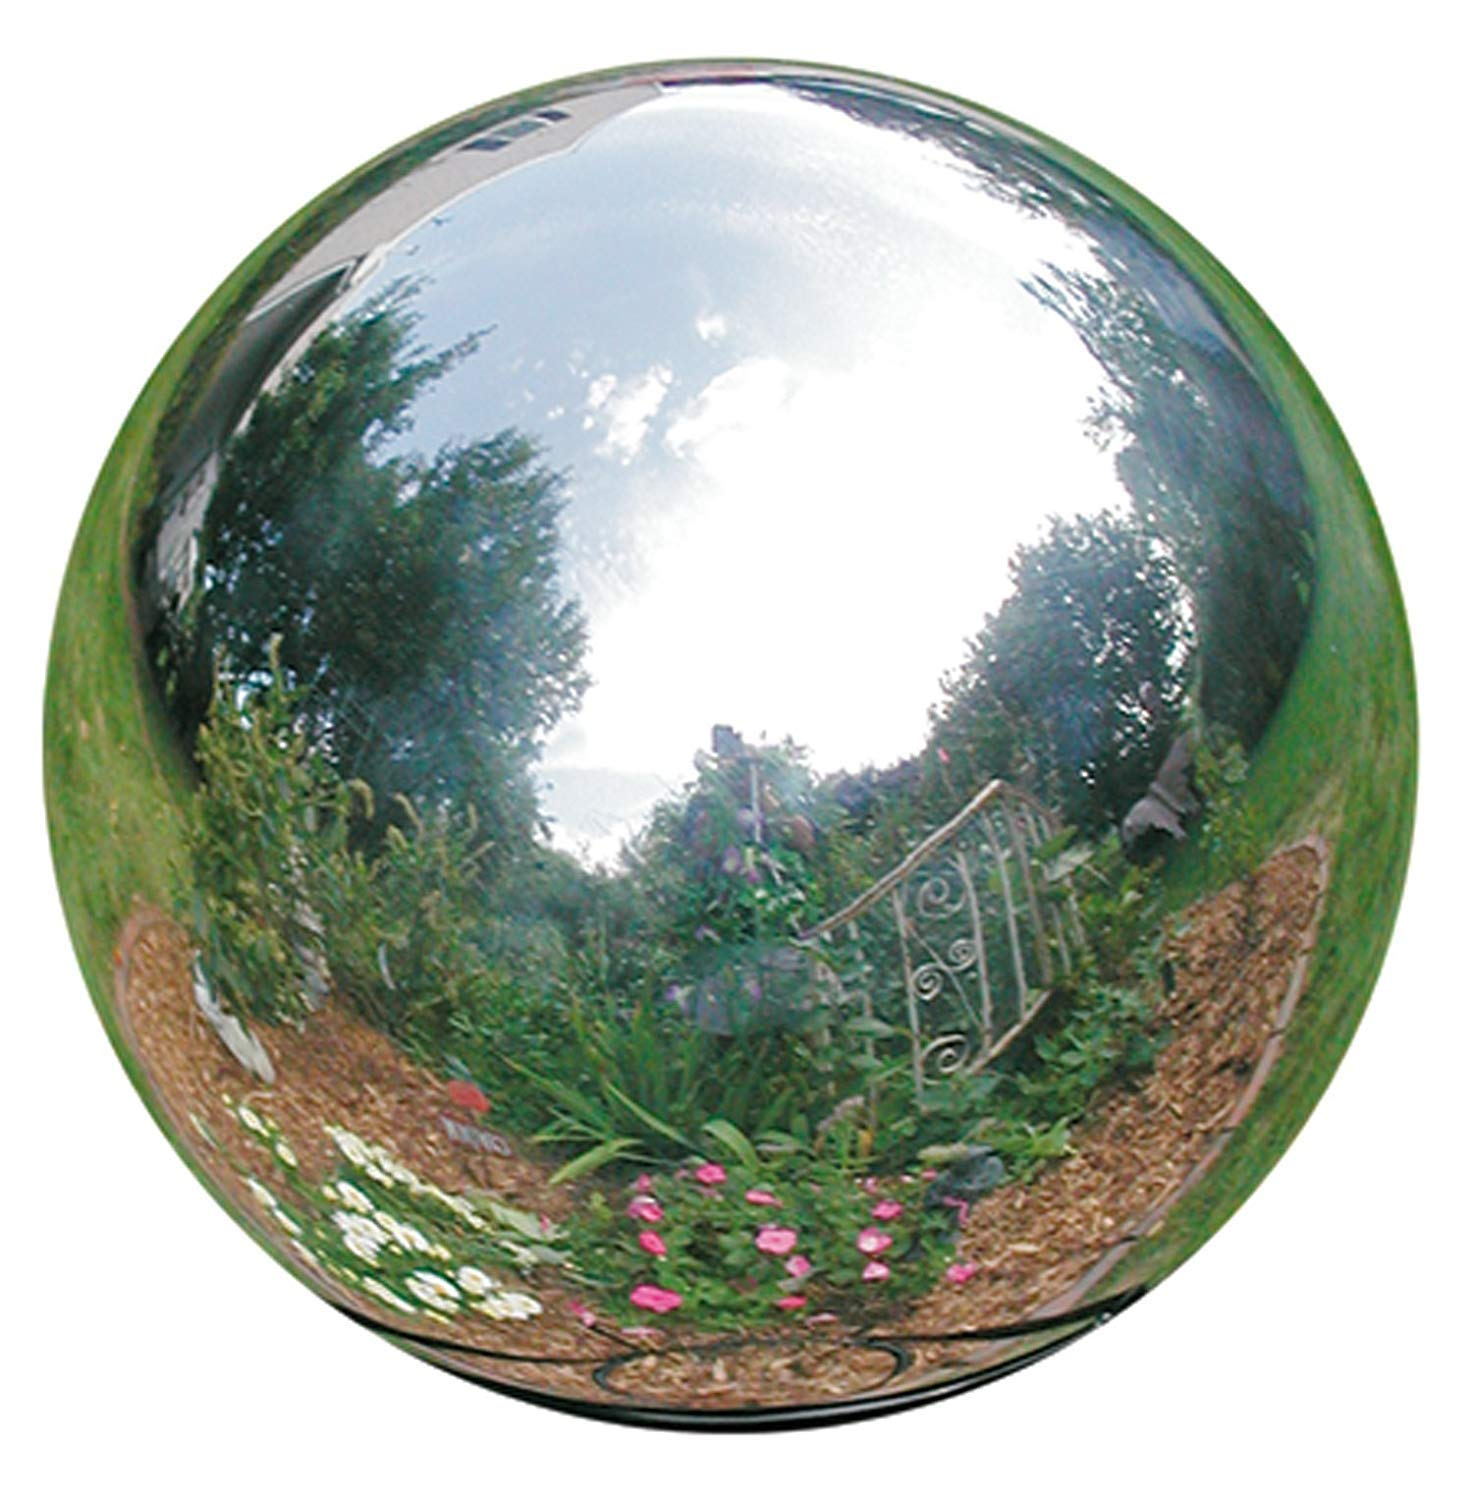 HomDSim 42 cm/16.5 inch Diameter Gazing Globe Mirror Ball,Silver Stainless Steel Polished Reflective Smooth Garden Sphere,Colorful and Shiny Addition to Any Garden or Home